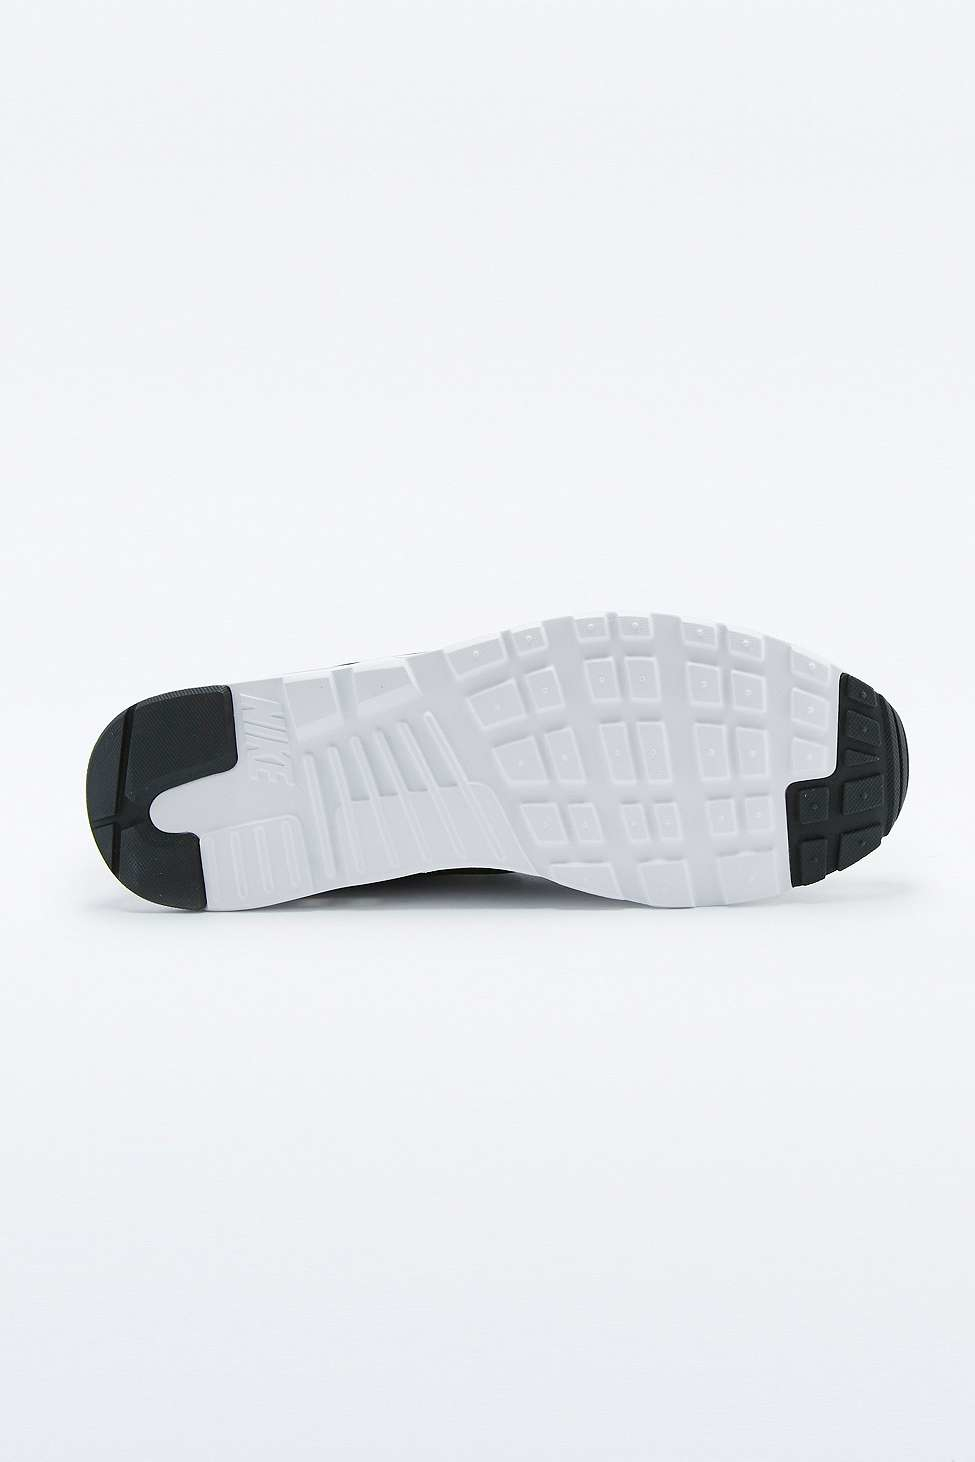 Nike Air Max Tavas Blue Leather Trainers for Men